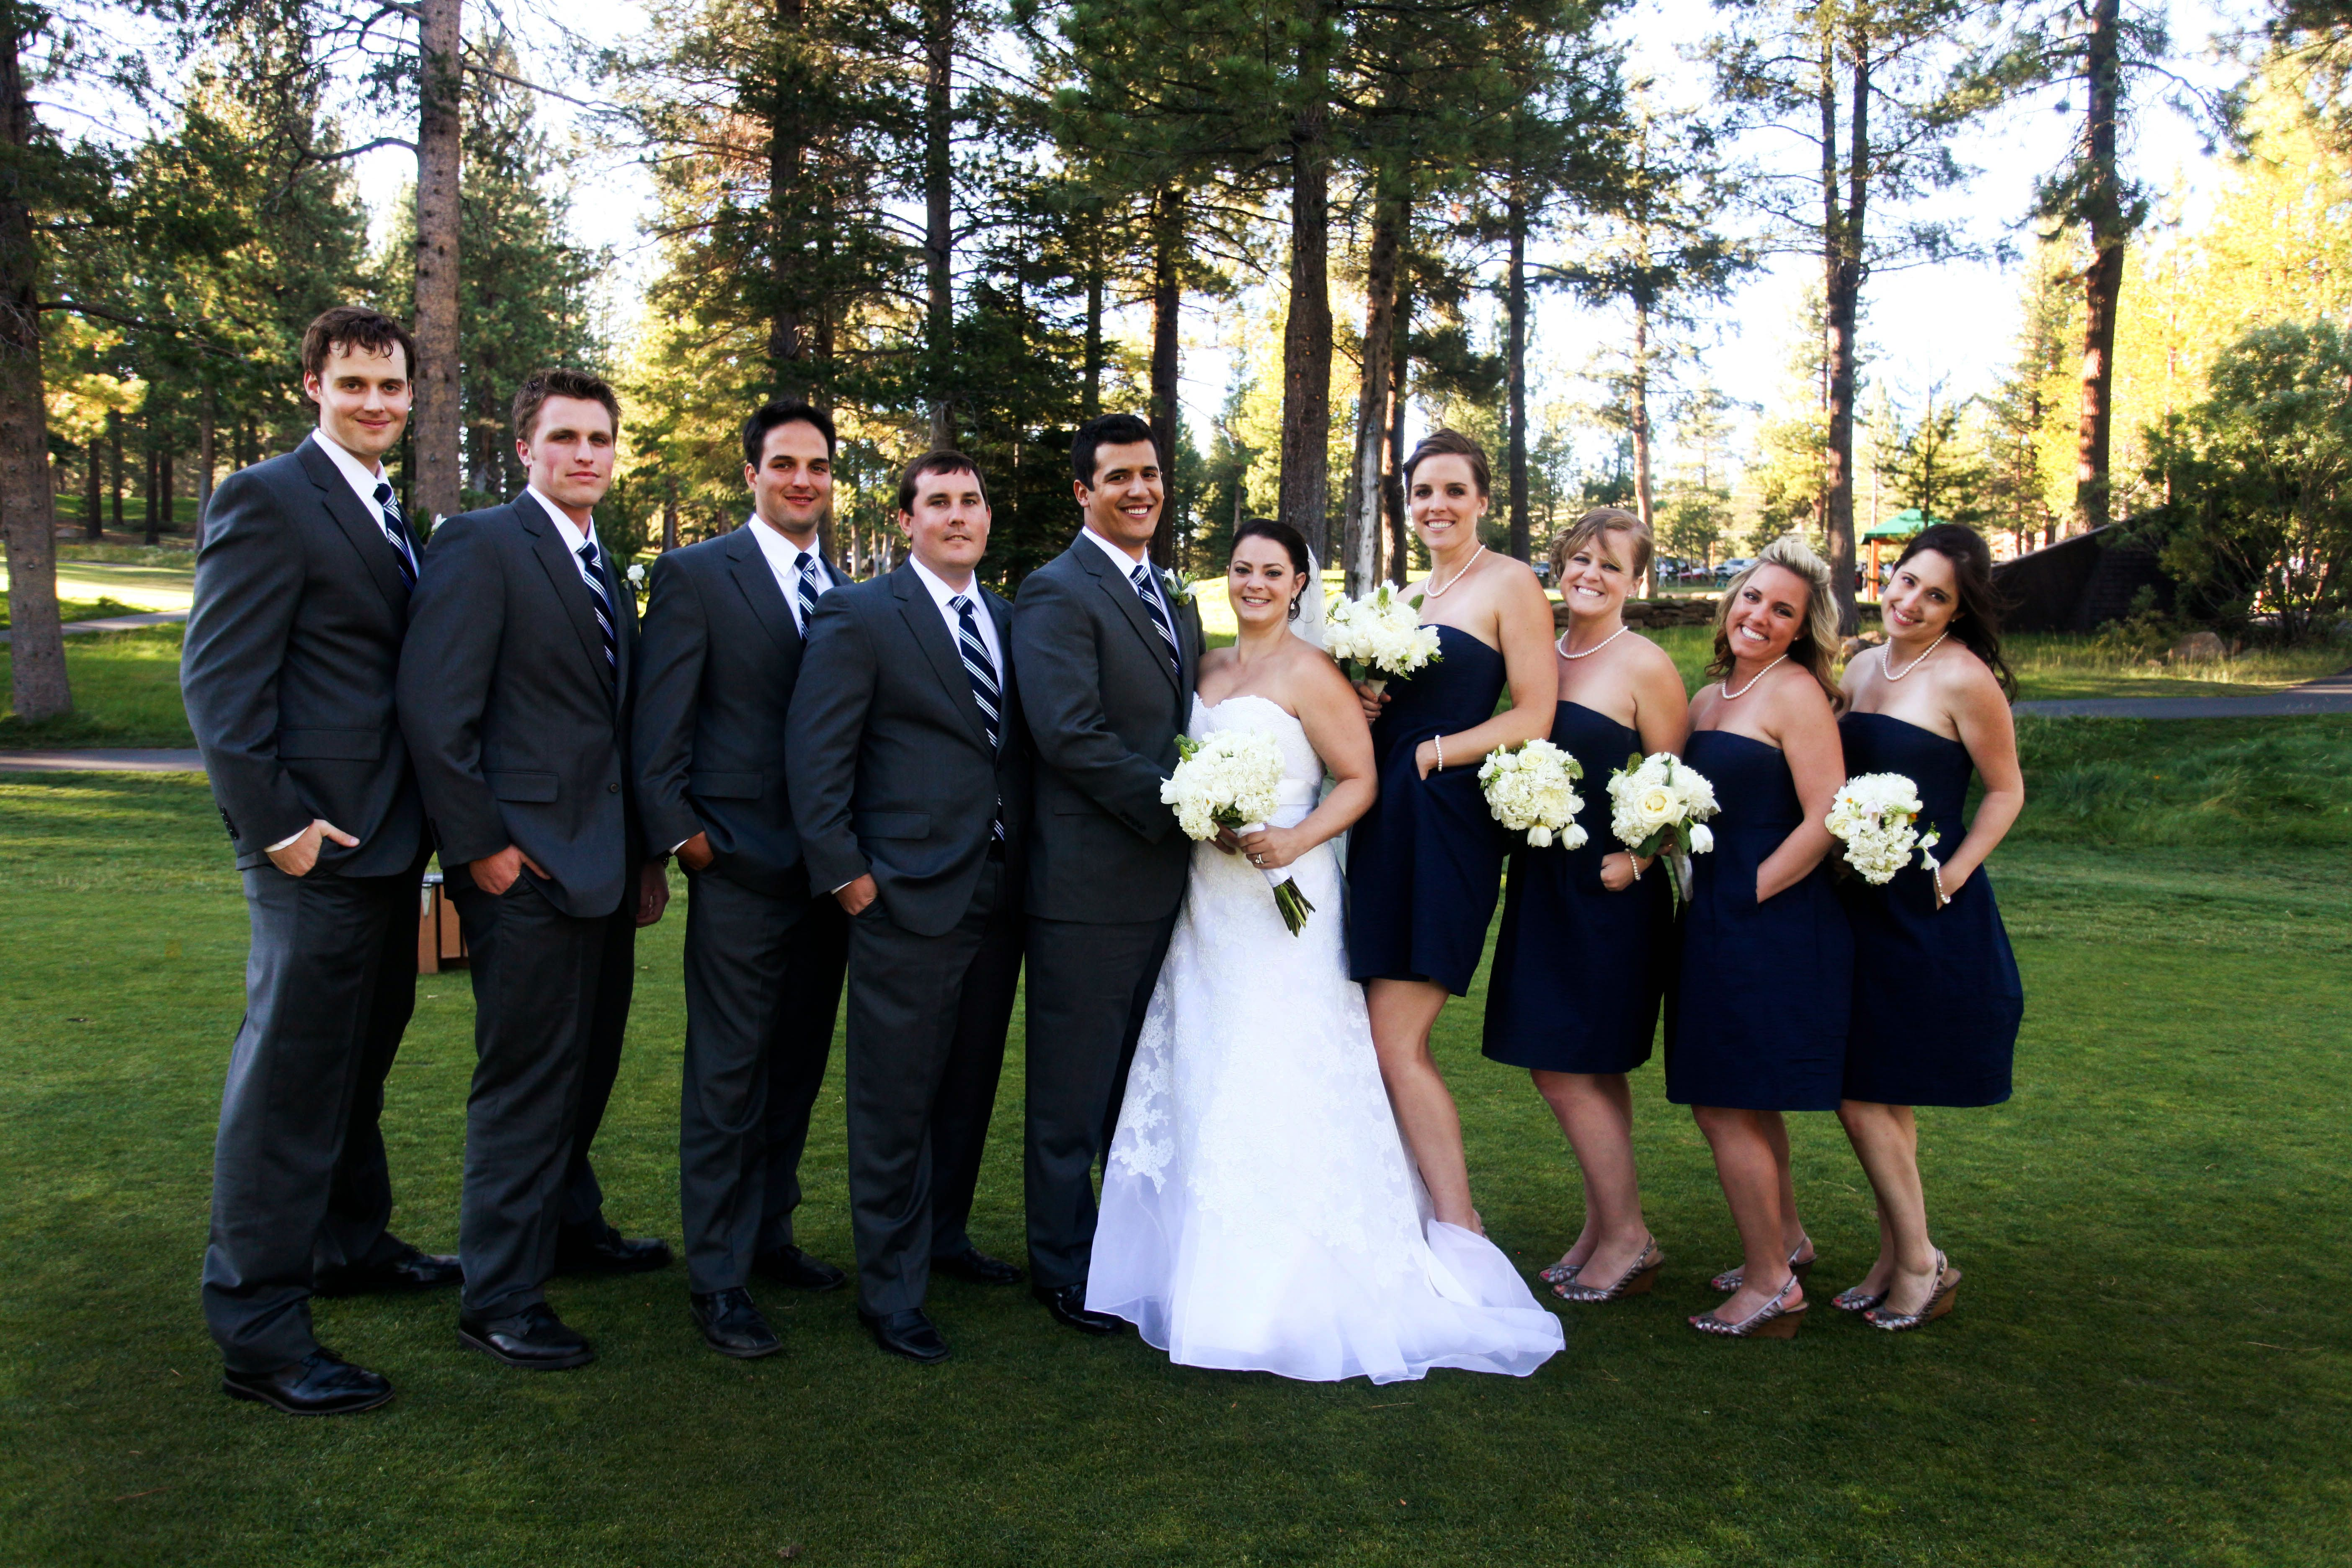 Photo via bridal parties wedding photo gallery and perfect wedding photo via blue dresseswedding ombrellifo Choice Image